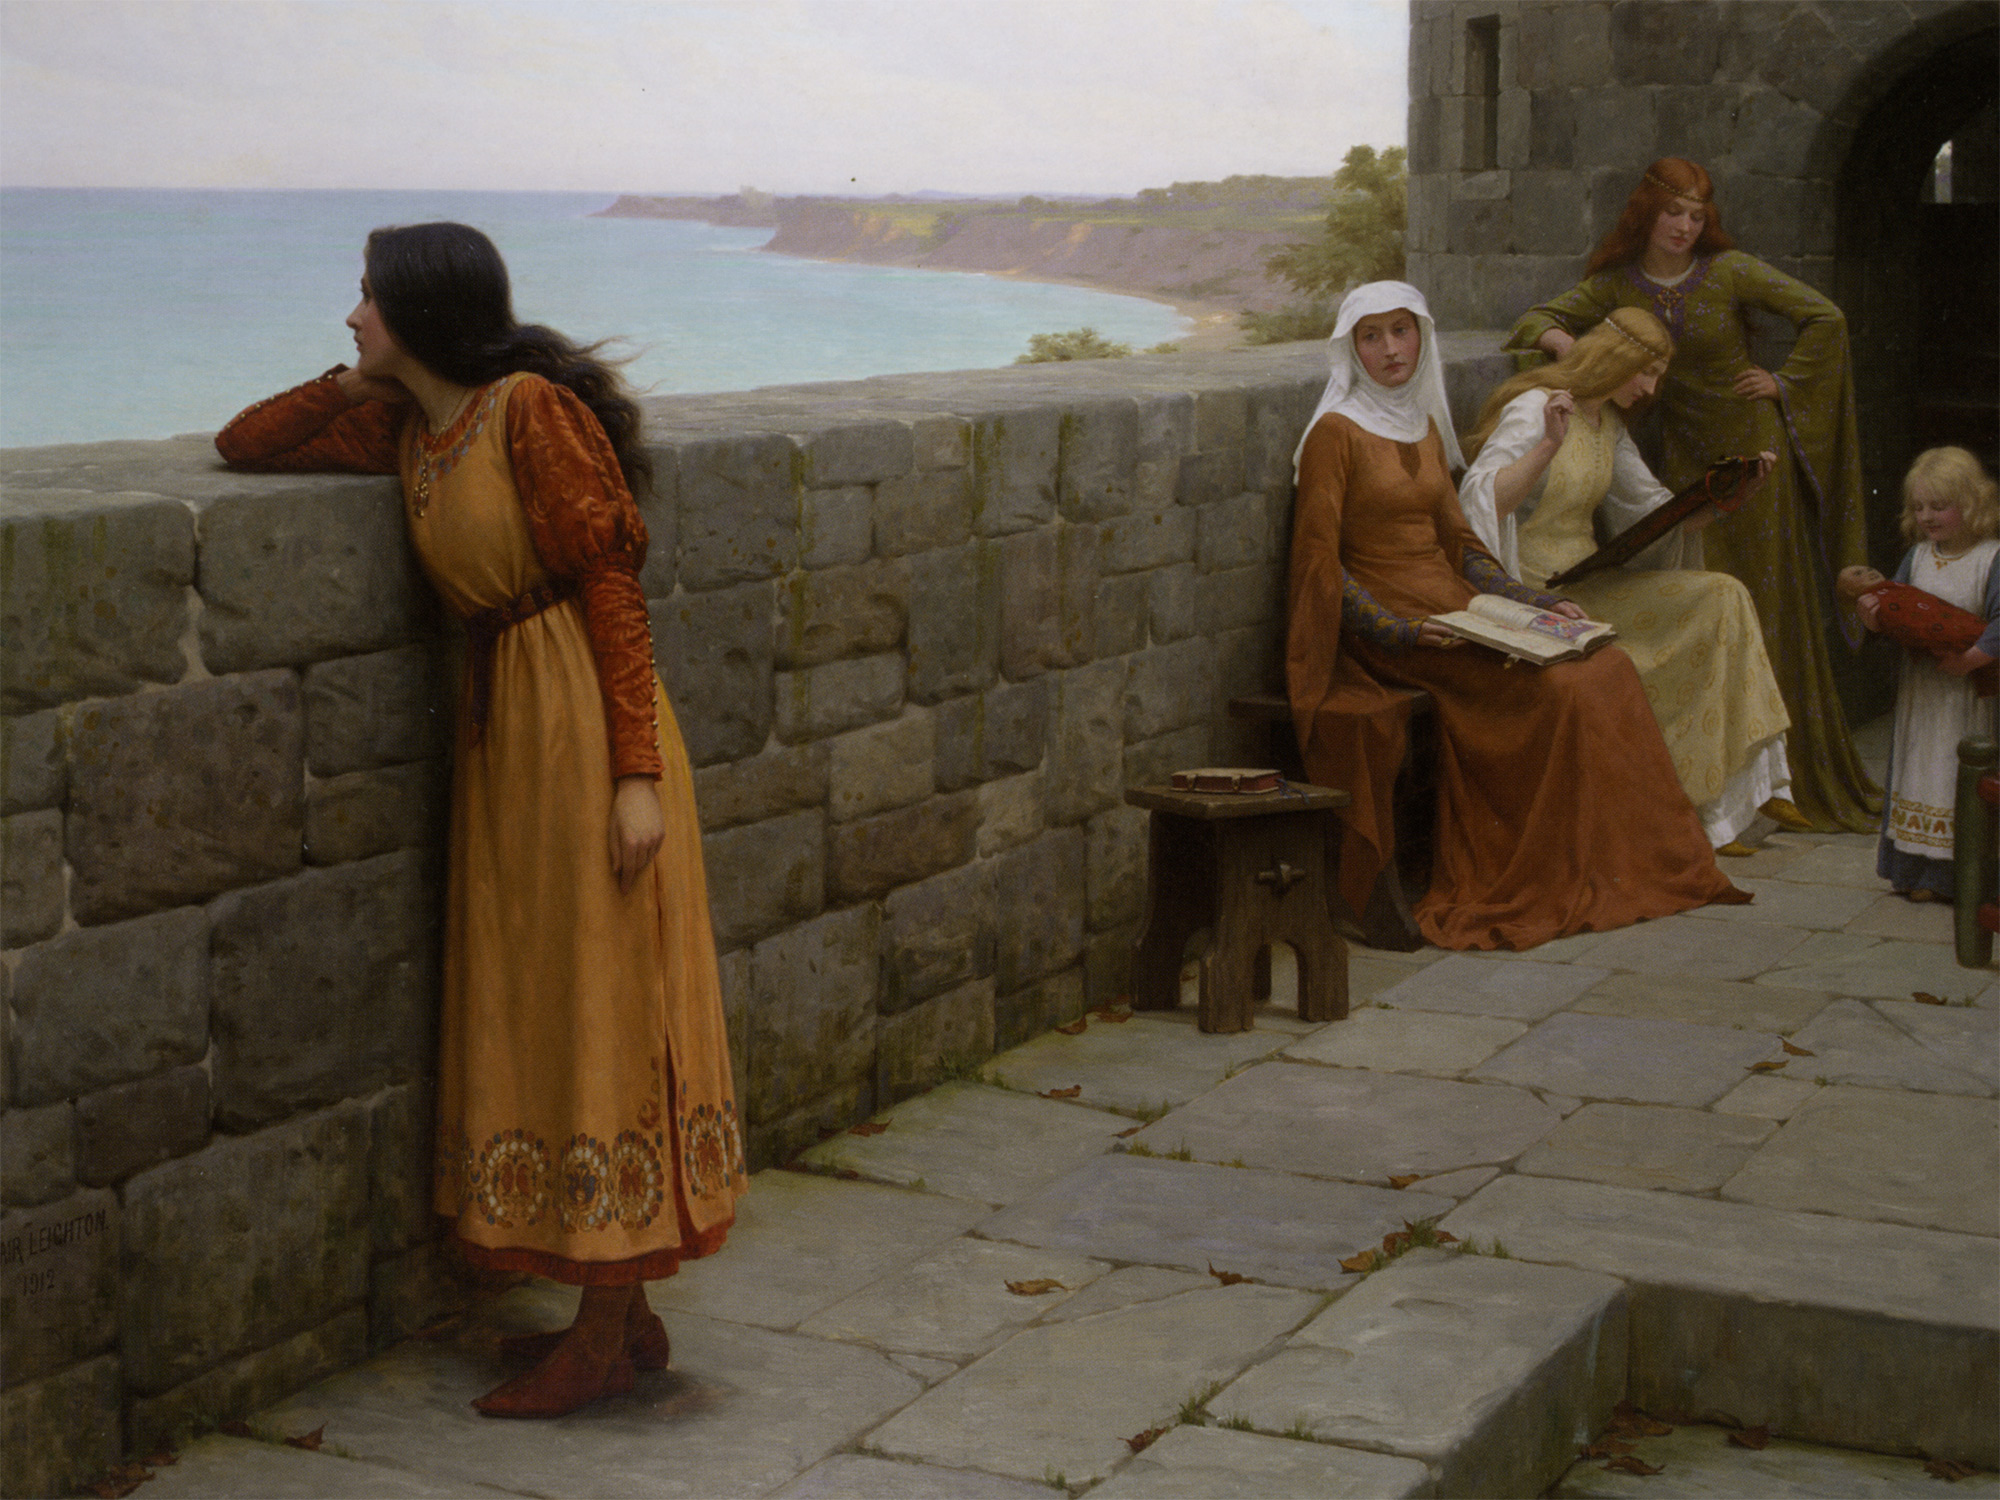 http://upload.wikimedia.org/wikipedia/commons/3/3f/Edmund_Blair_Leighton_-_The_Hostage.jpg